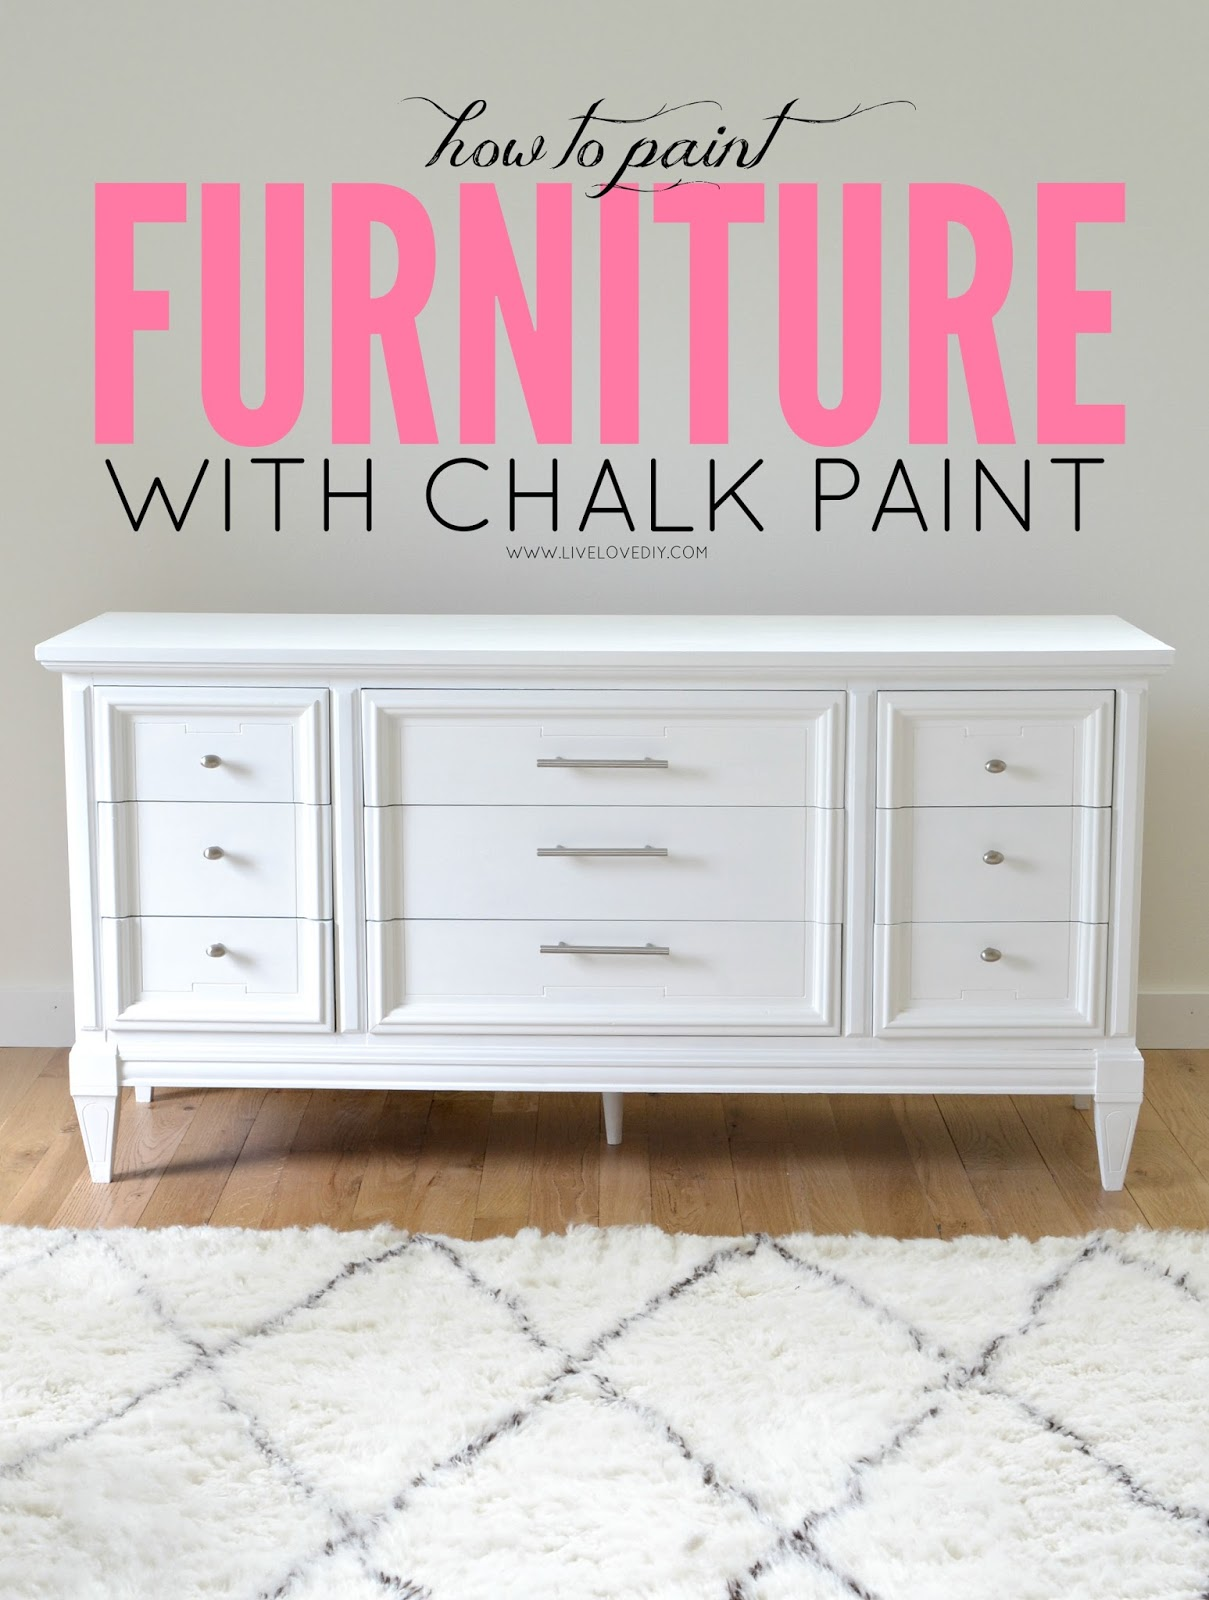 Paint For Bedroom Furniture Livelovediy How To Paint Furniture With Chalk Paint And How To